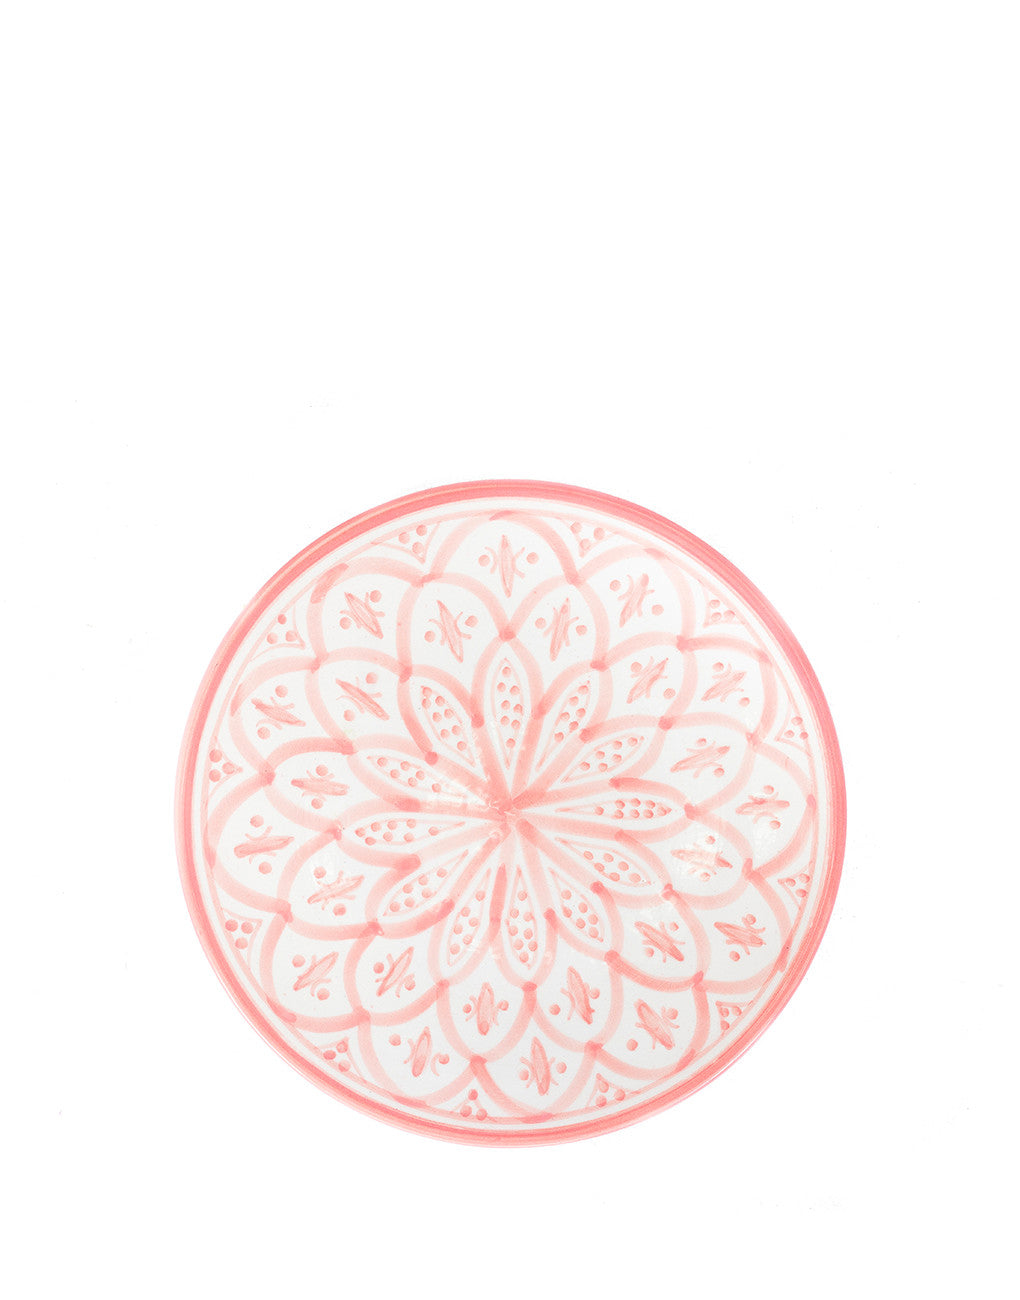 Ceramic Side Plate - Blush | Chabi Chic | Morocco | The Little Market